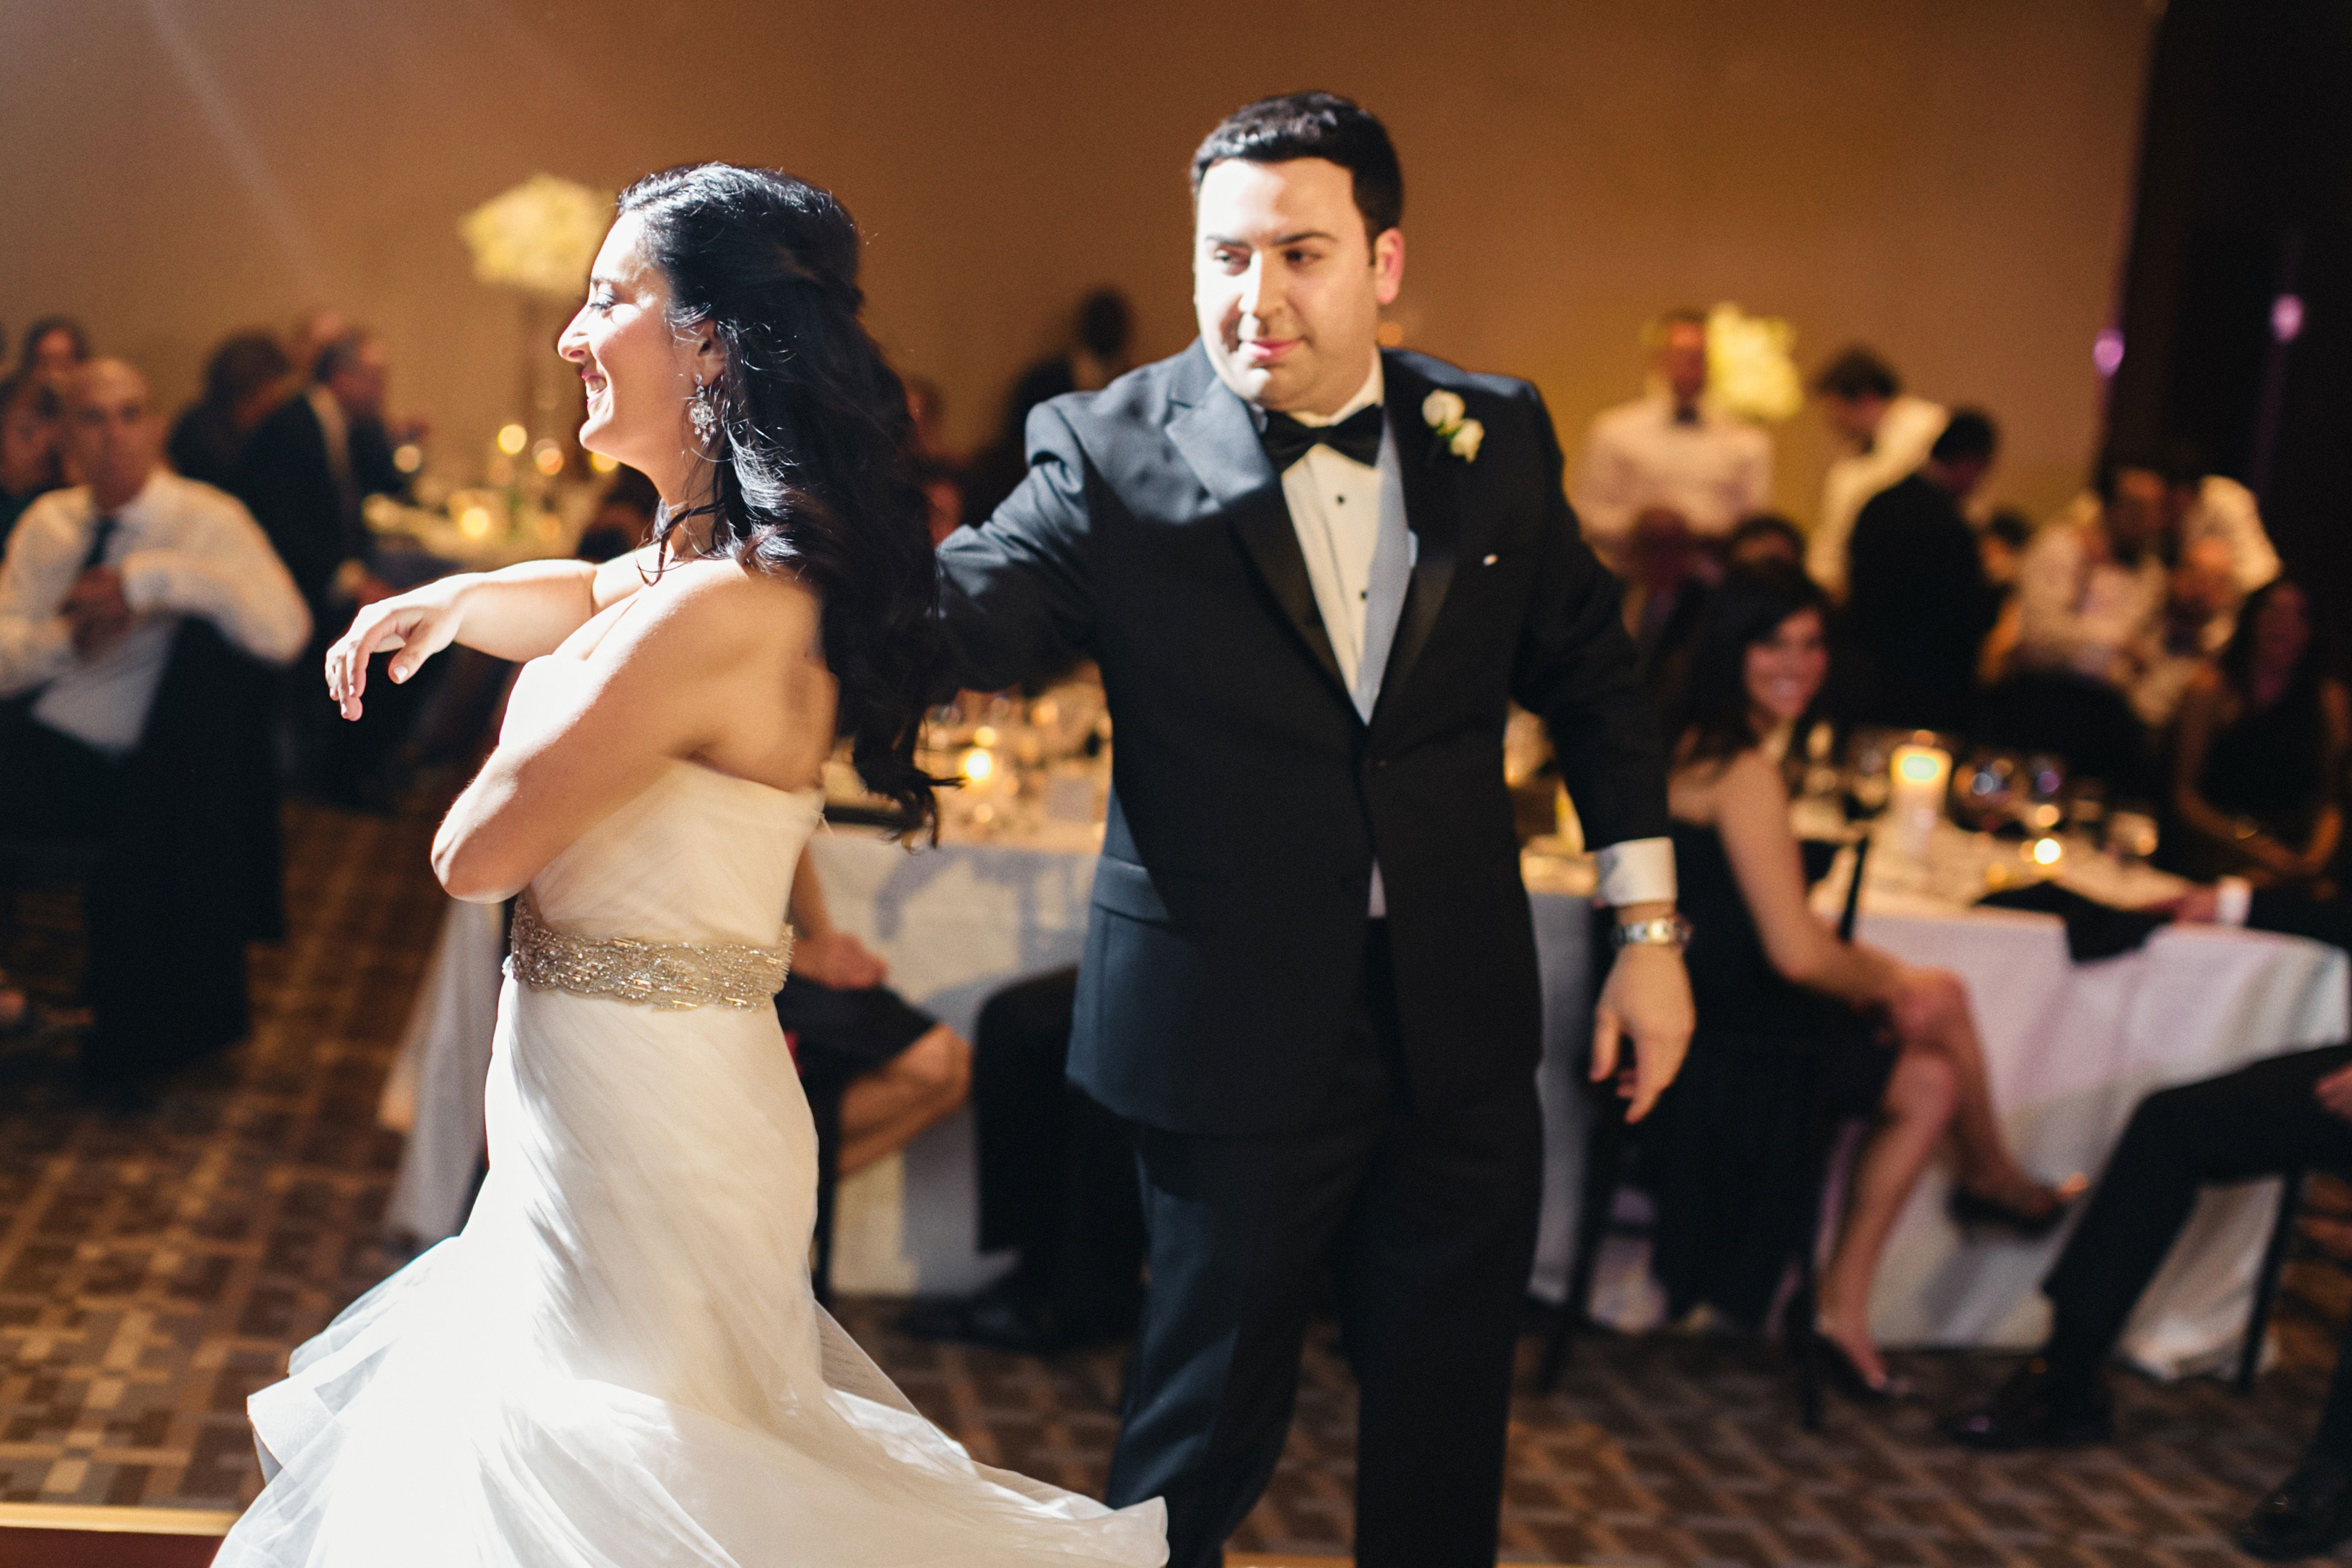 How To Dance At A Wedding.Wedding Dances Wedding Dance Lessons Wedding Dance